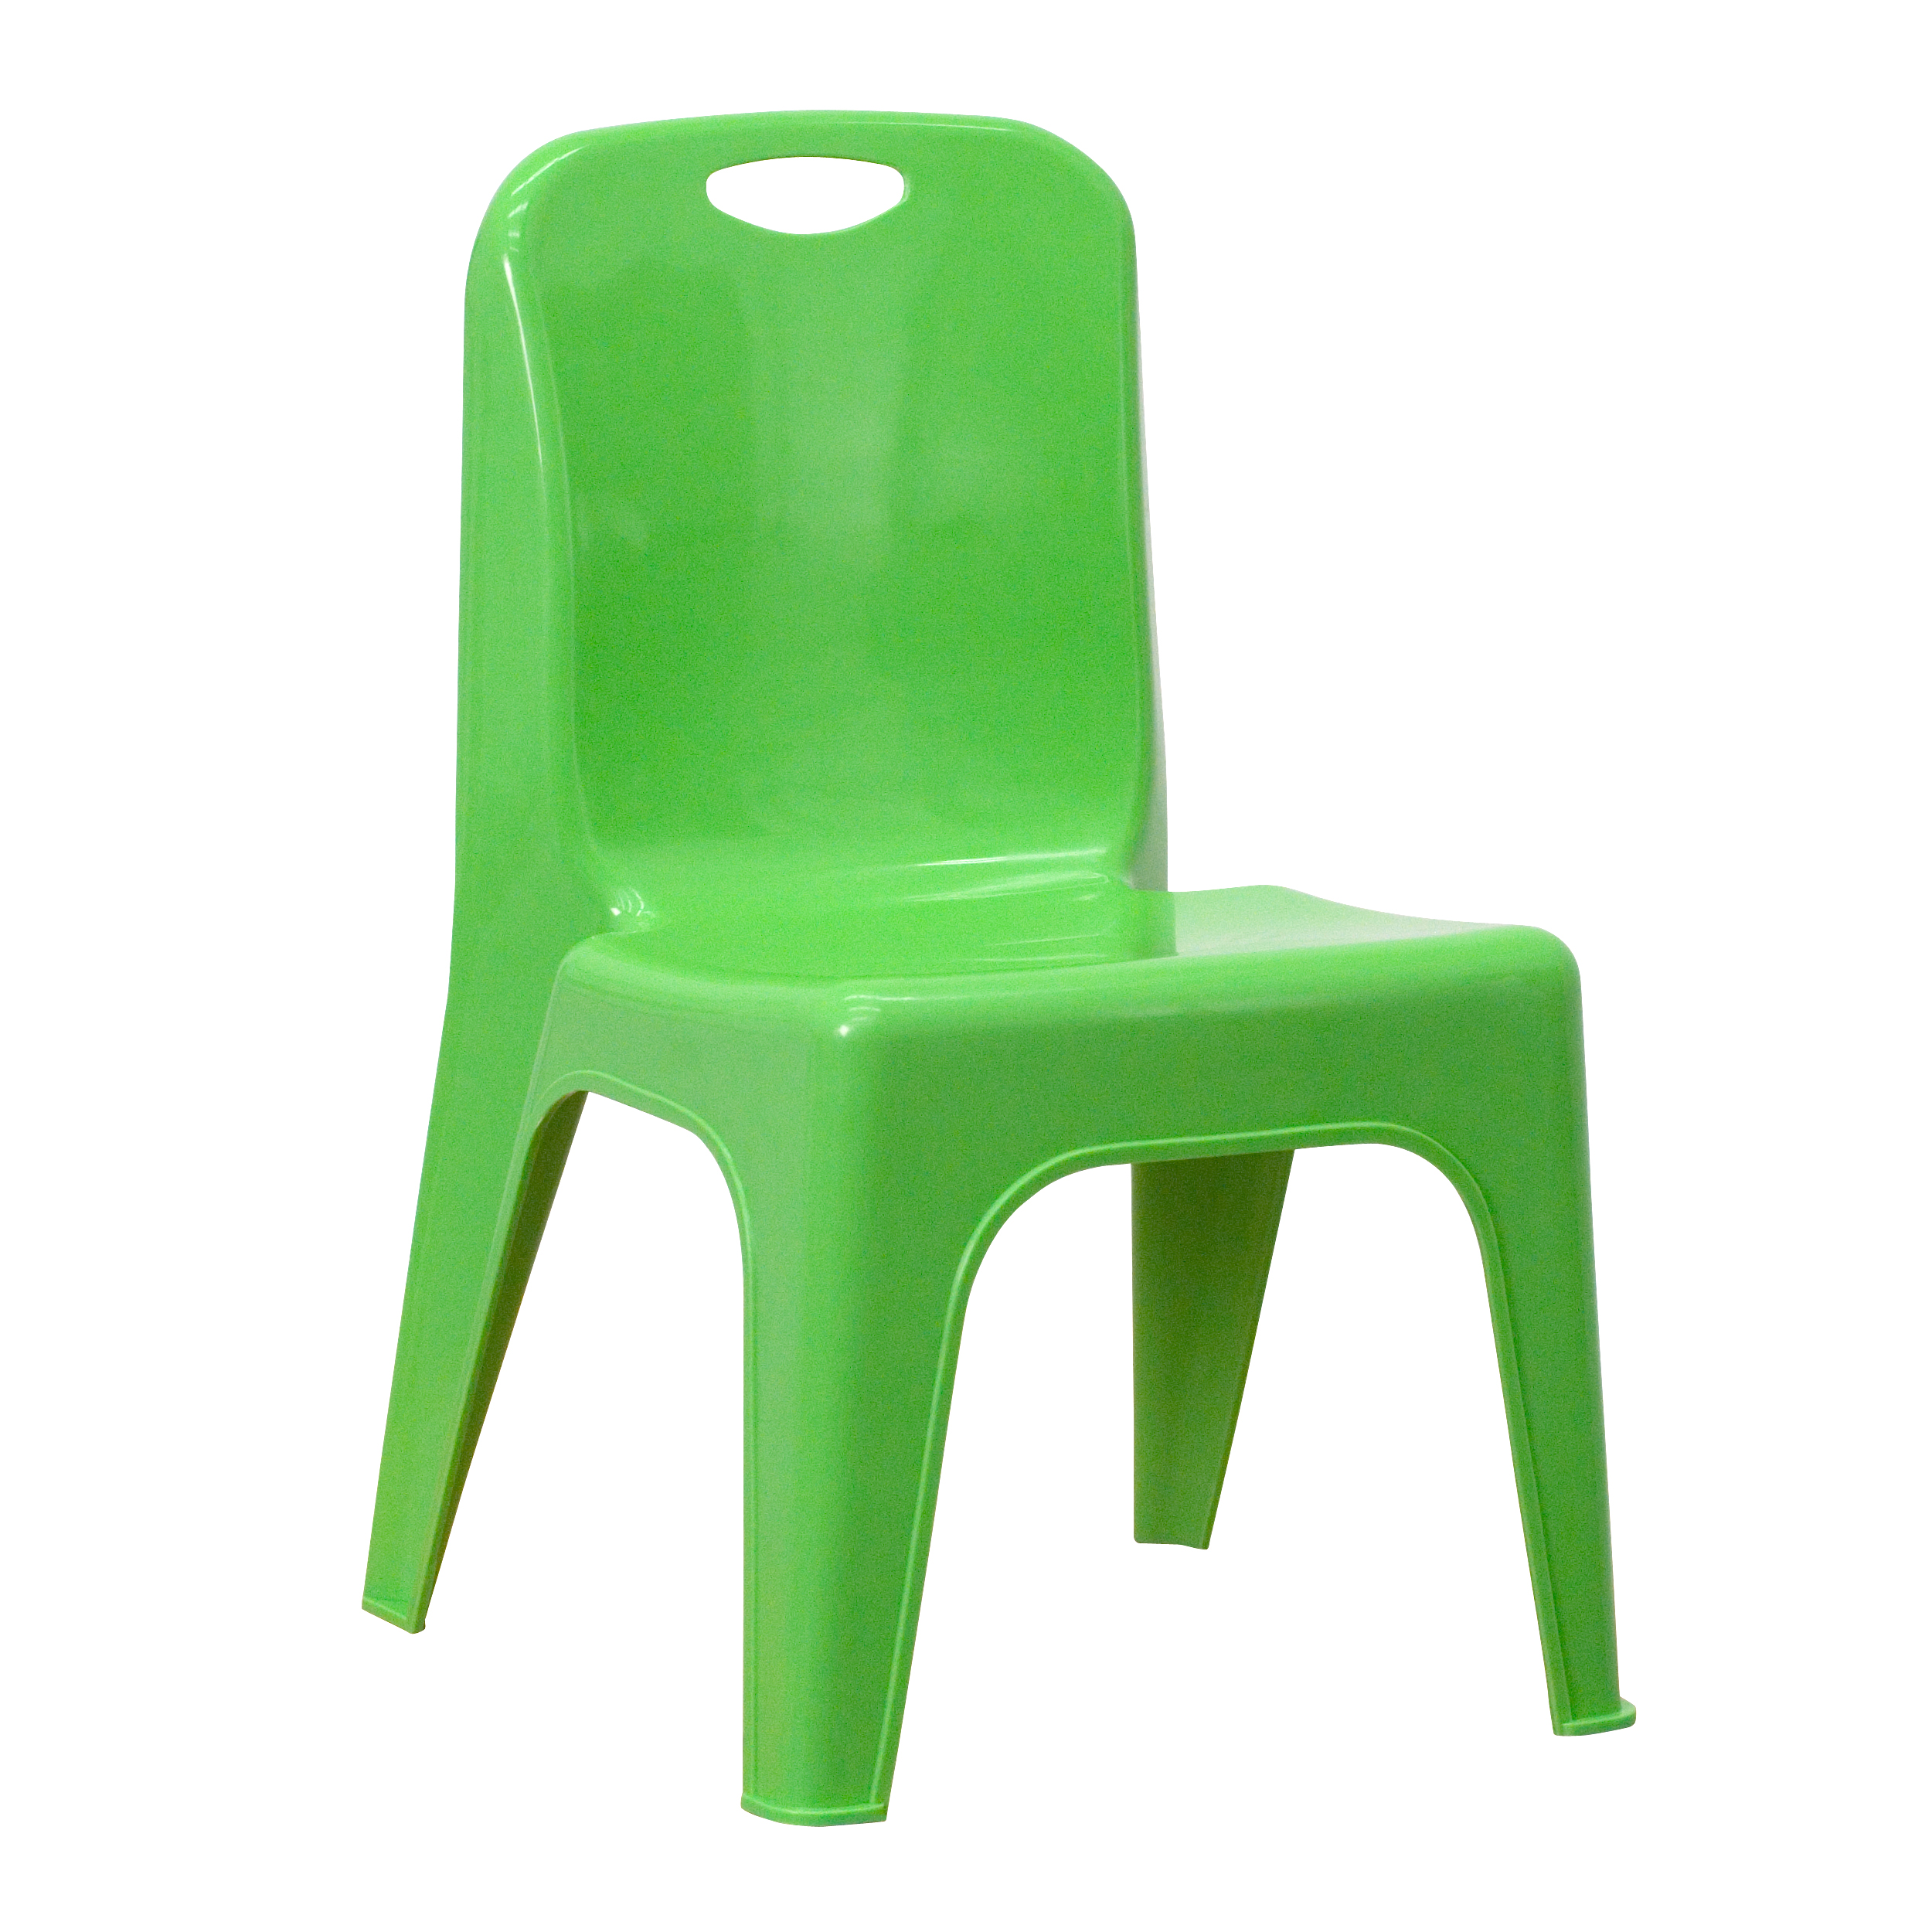 Flash Plastic Stackable School Chair with Carrying Handle